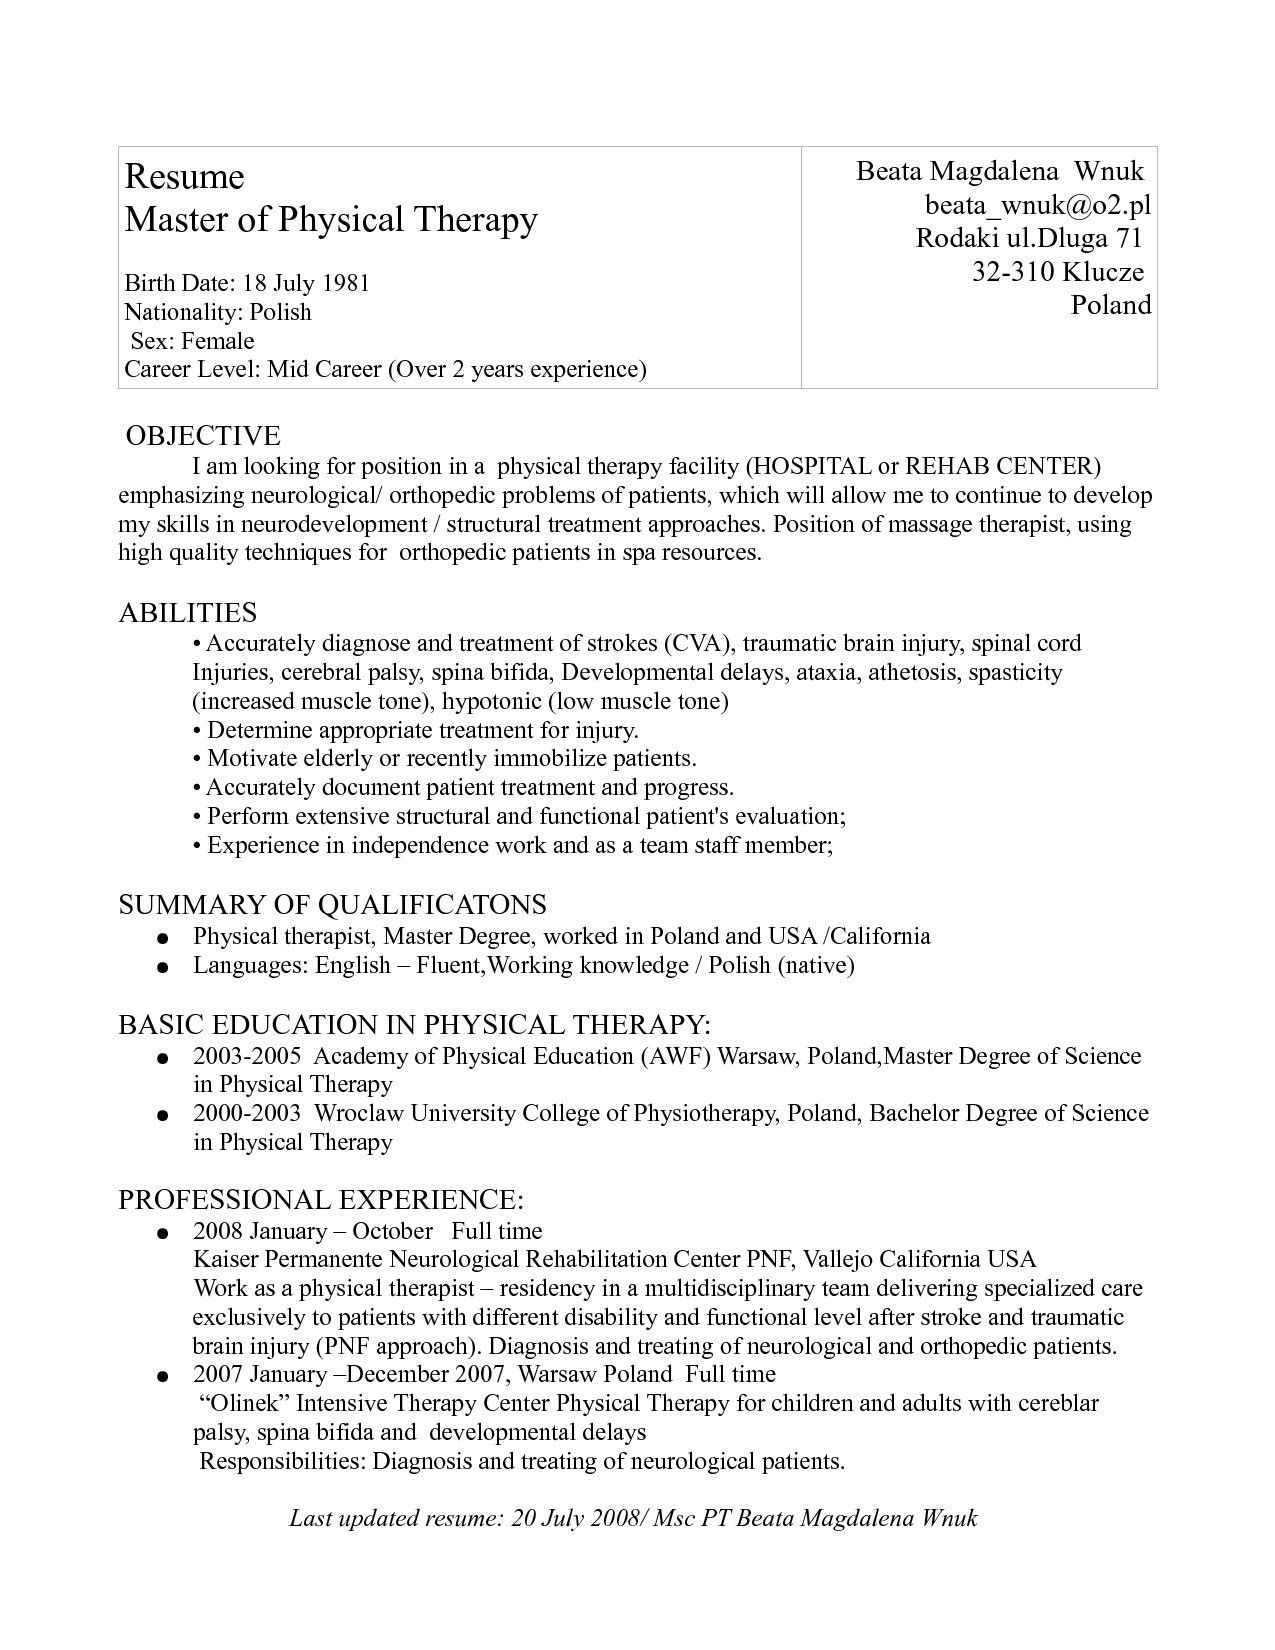 68 Beautiful Photos Of Resume Examples Focusing On Experience Check More At Https Www Ourpetscrawley Com 68 Beautiful Photos Of Resume Examples Focusing On Ex